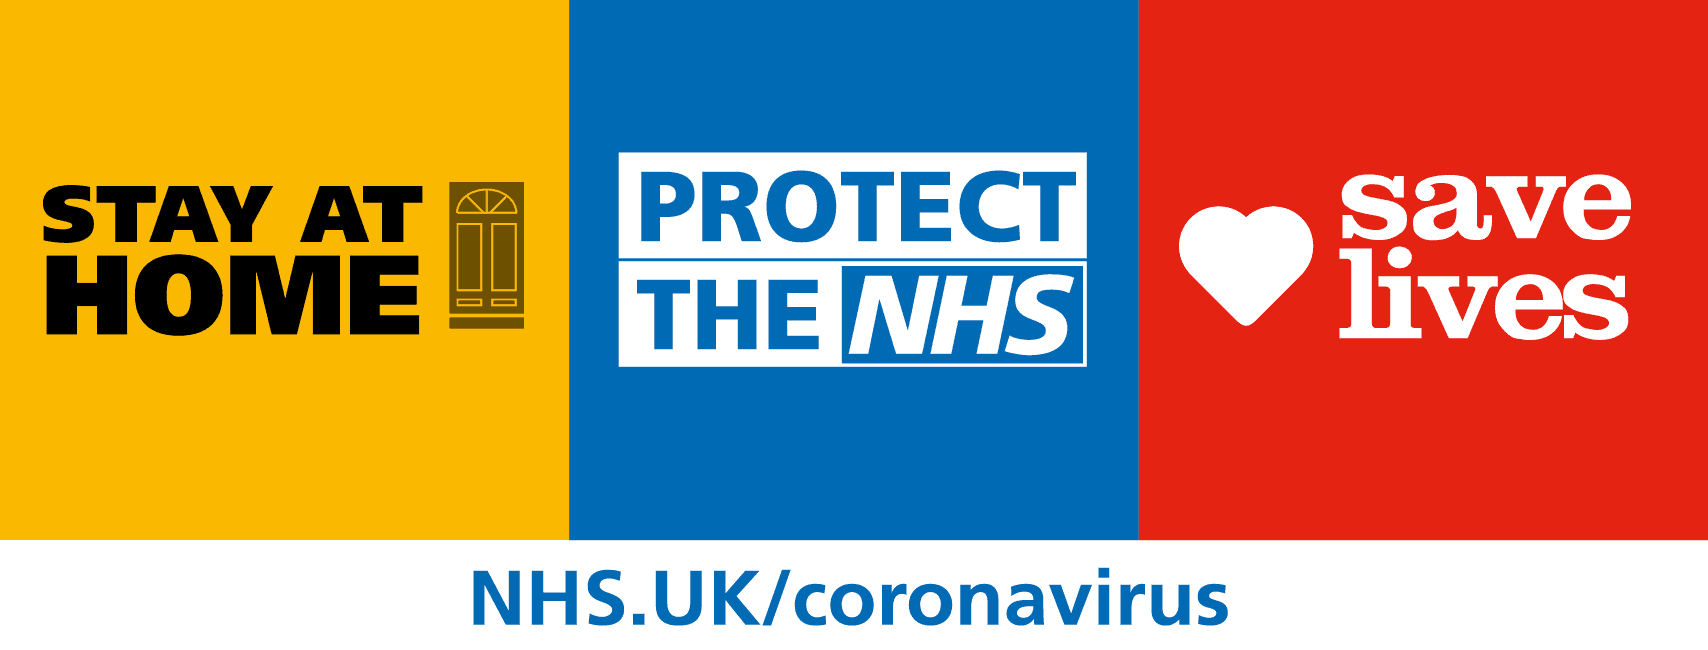 Stay Home, Protect the NHS